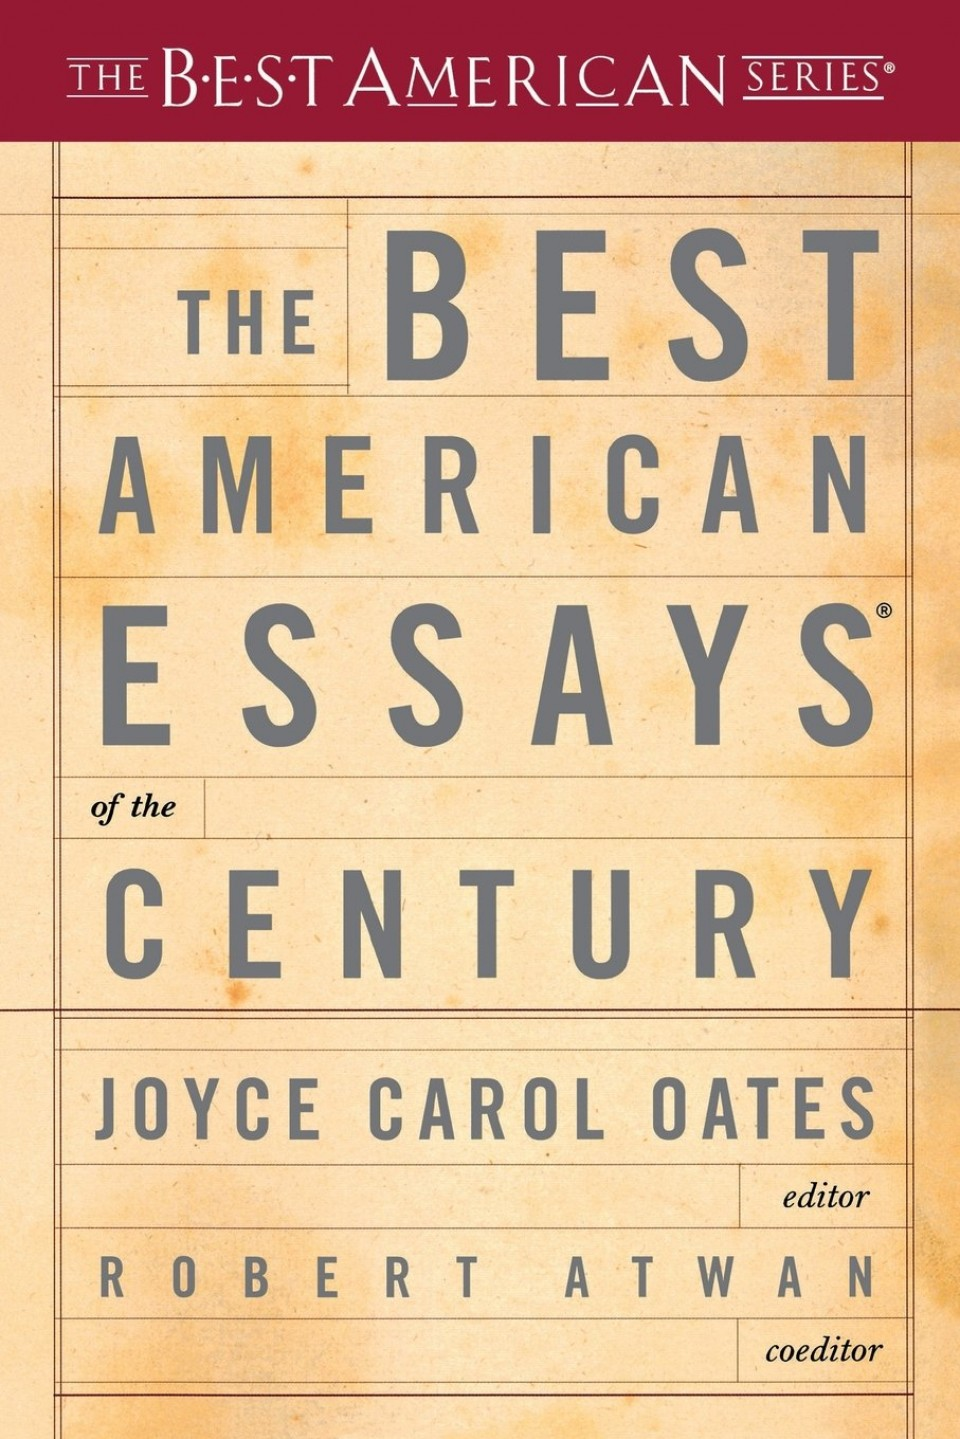 002 The Best American Essays Essay Example Wonderful 2013 Pdf Download Of Century Sparknotes 2017 960